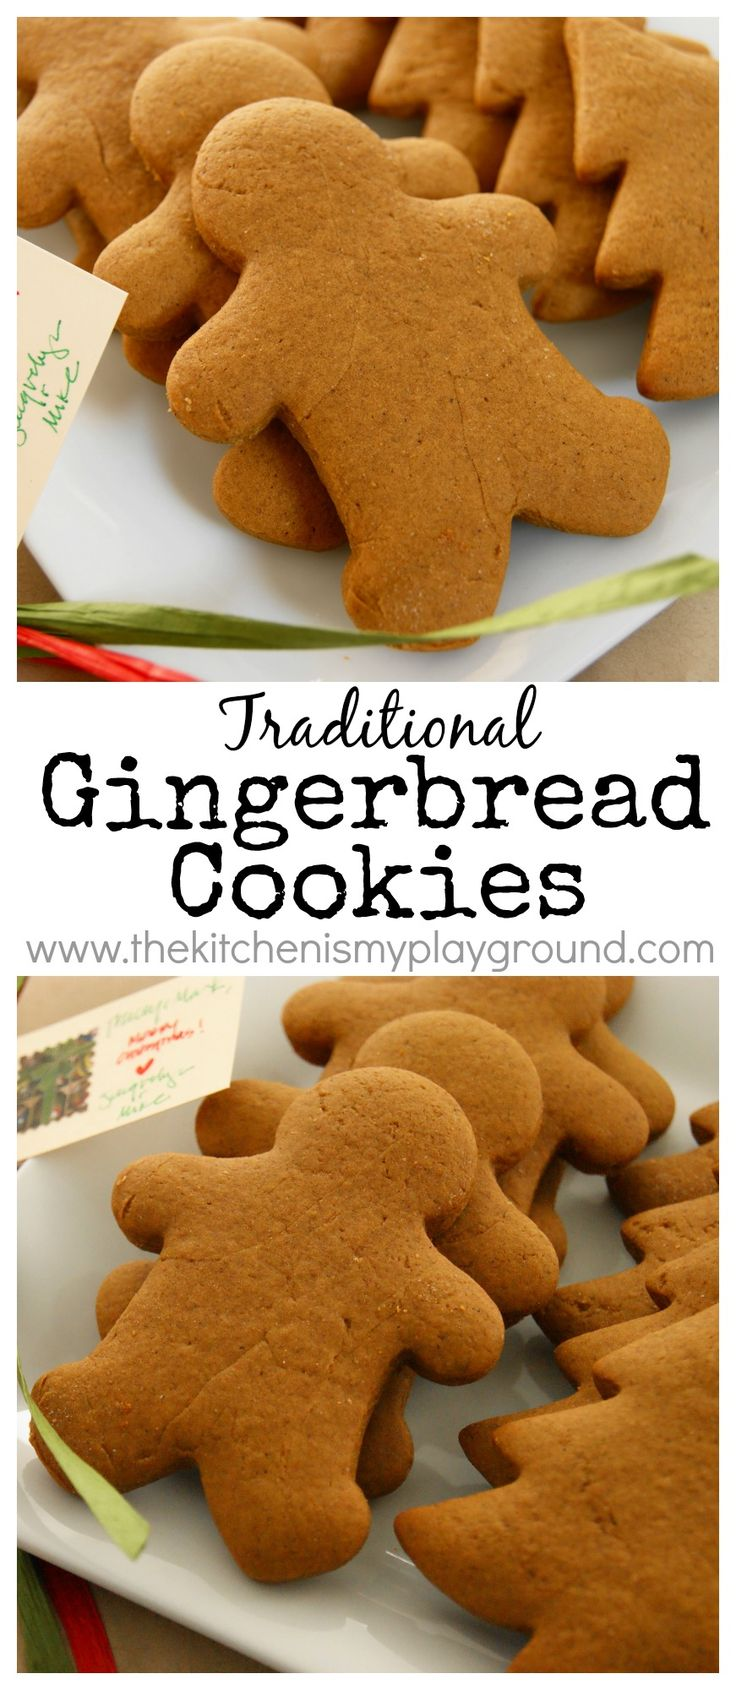 Traditional Gingerbread Cookies ~ it's just not Christmas without a big batch of these classic cookies! www.thekitchenismyplayground.com